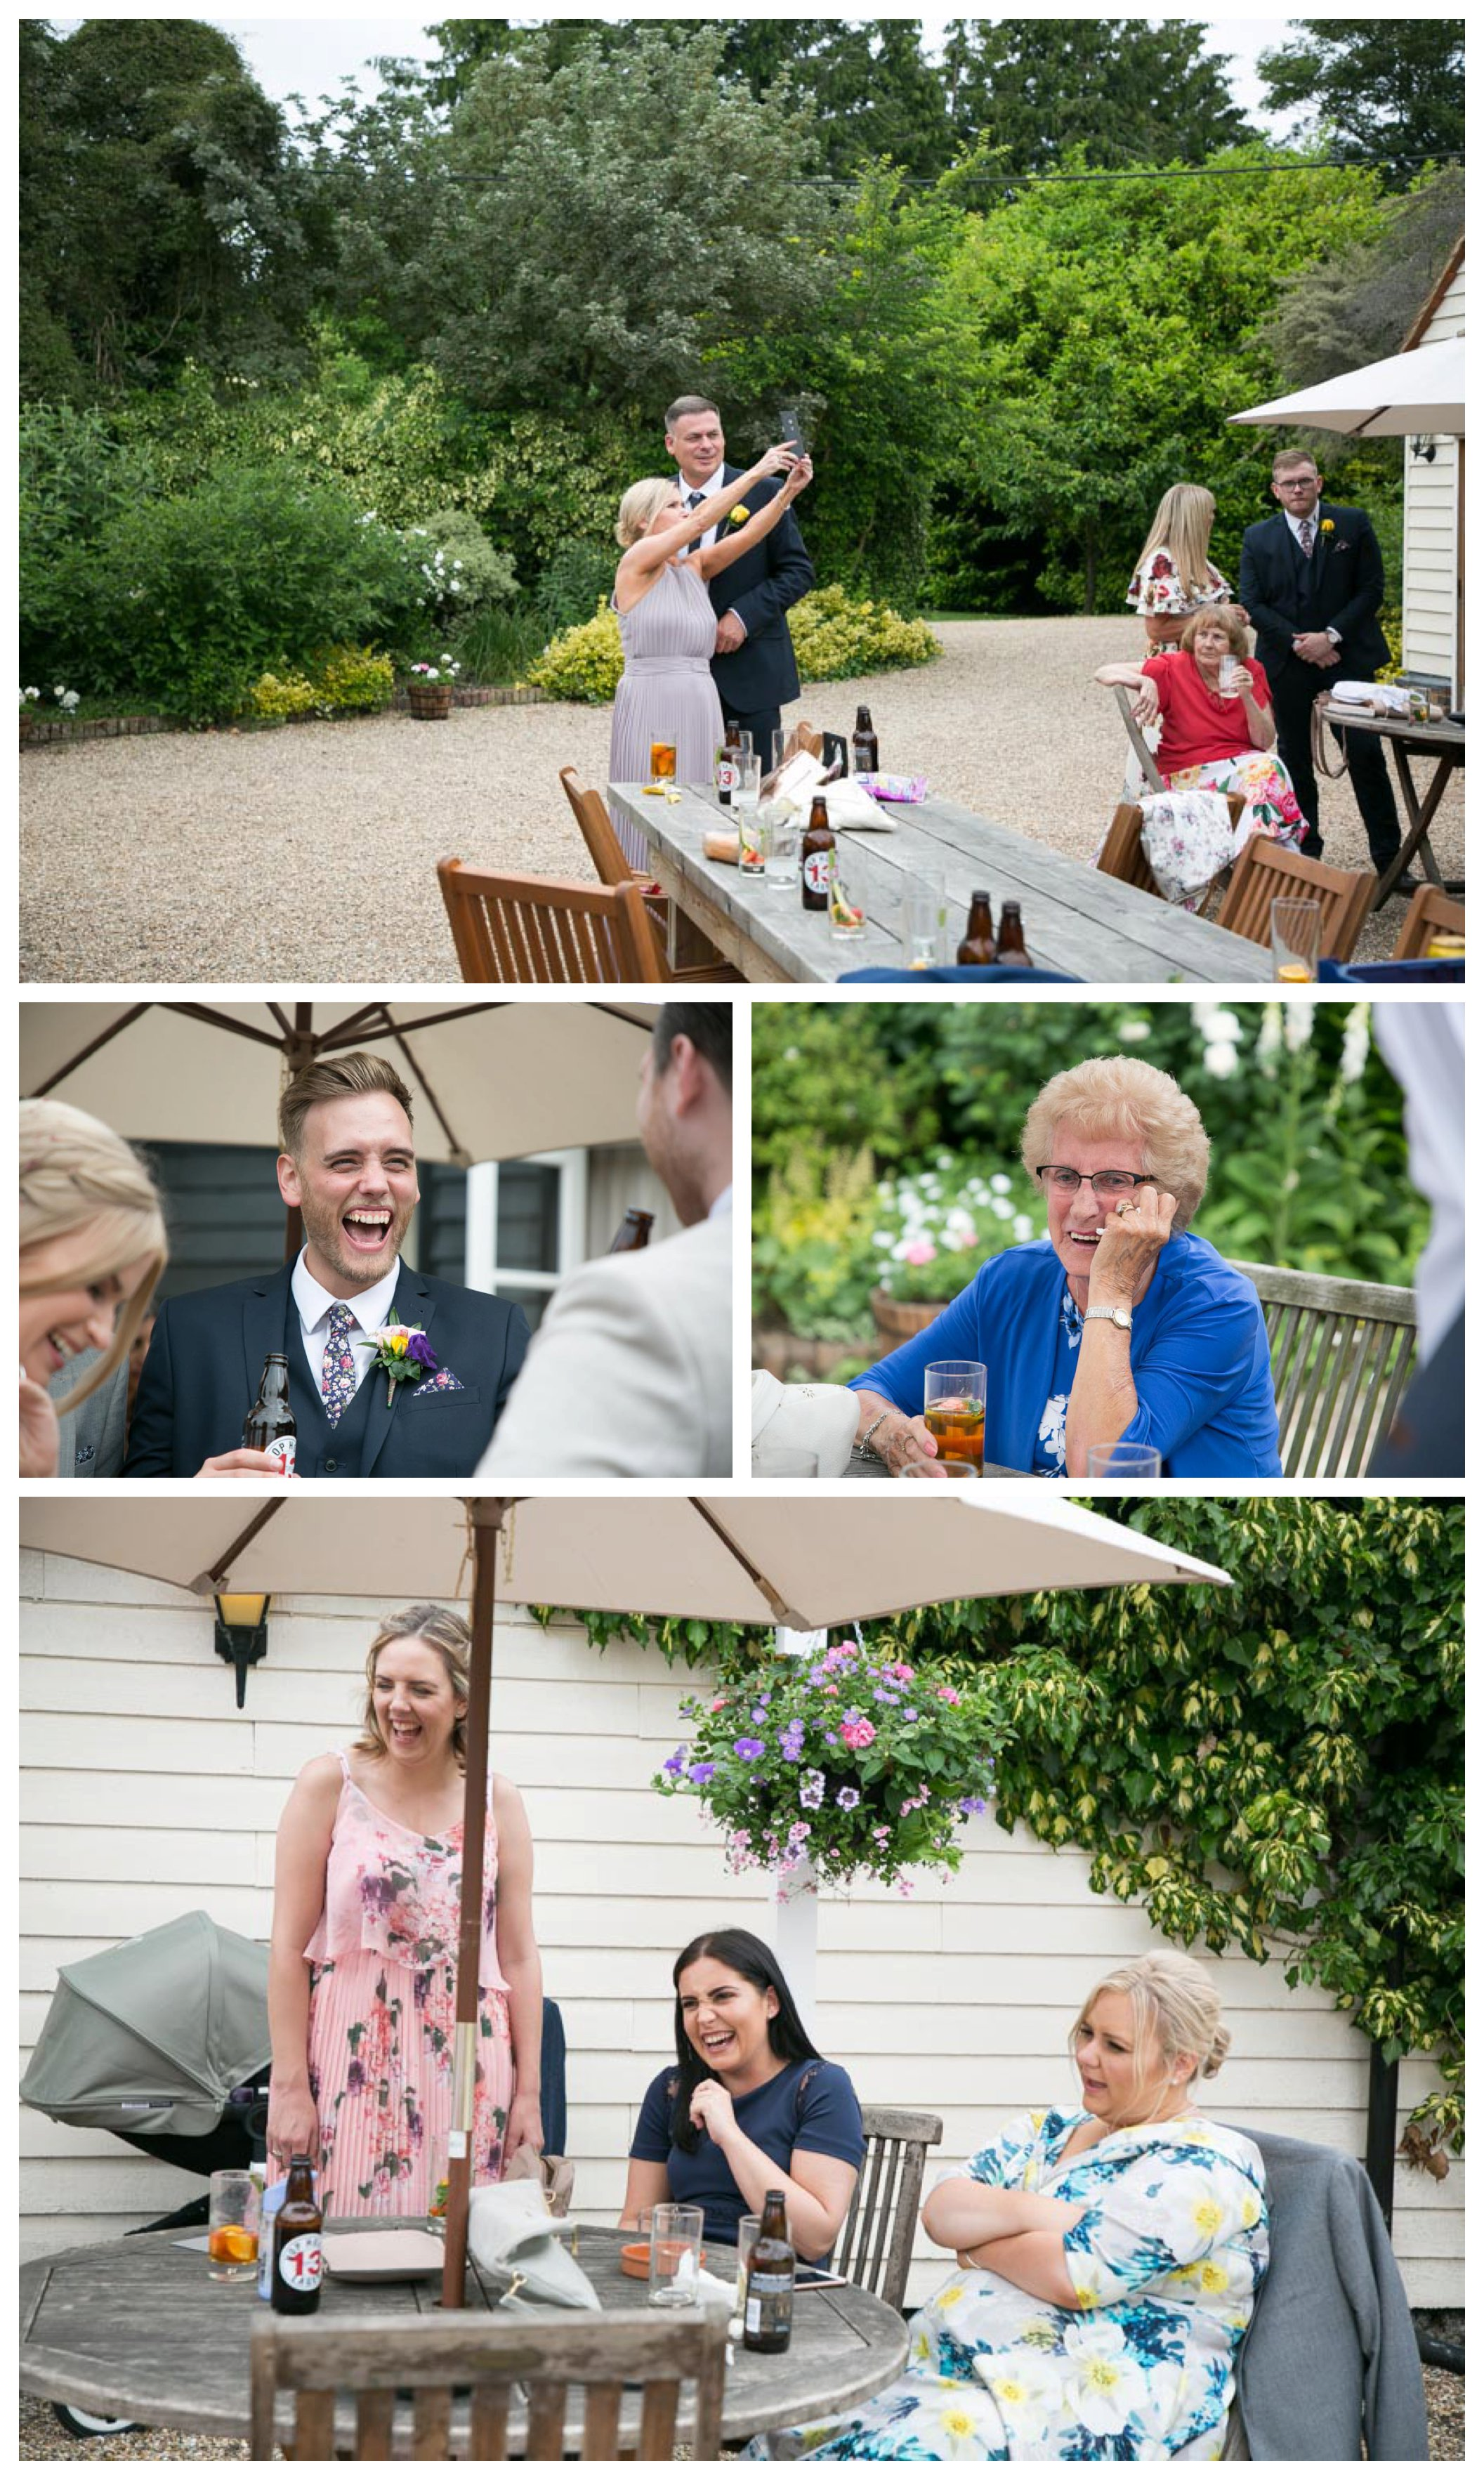 people laughing and having fun at outdoor wedding reception